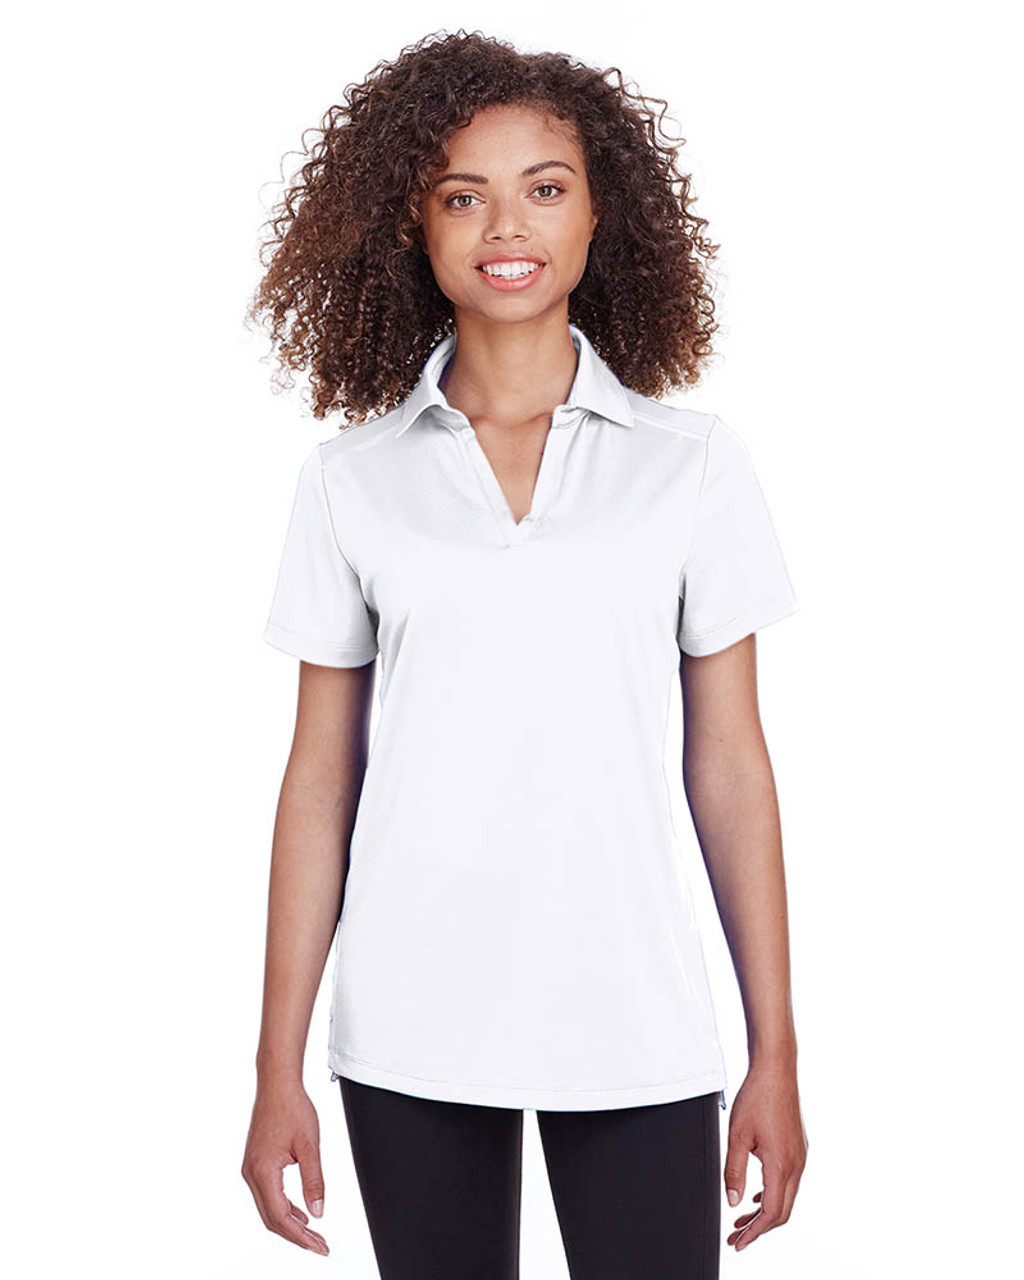 White - S16519 Spyder Ladies' Freestyle Polo | BlankClothing.ca